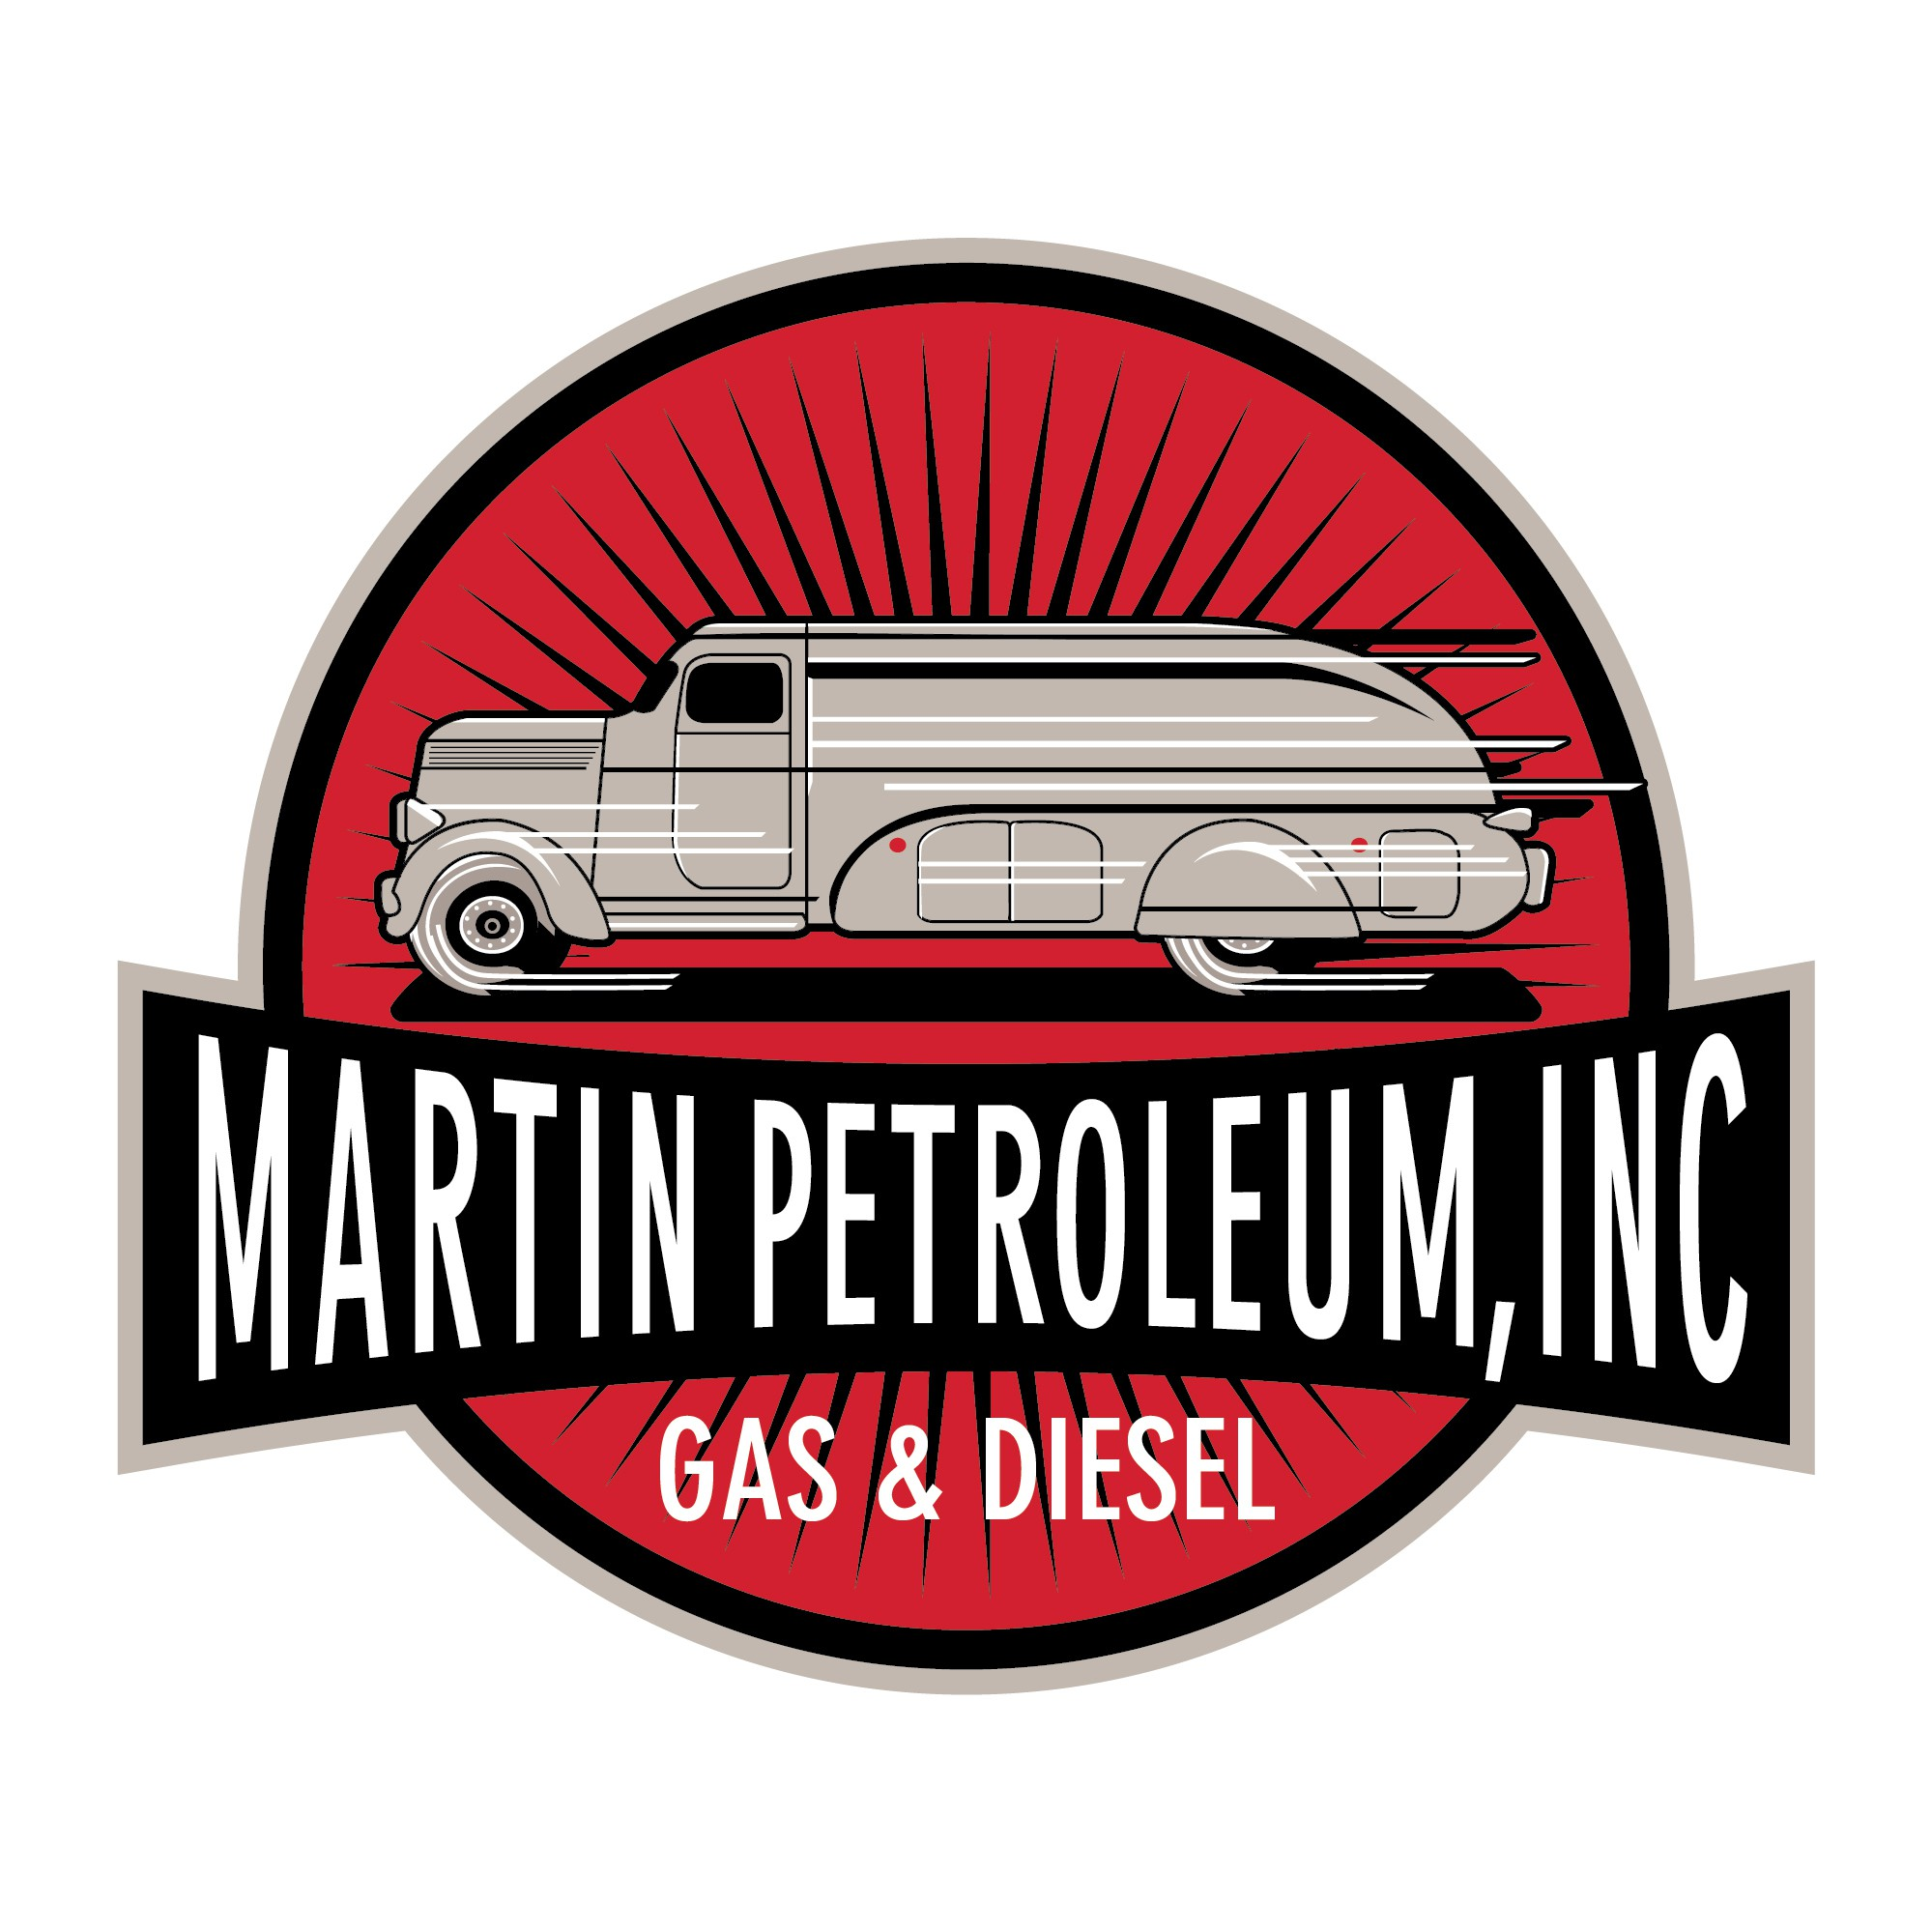 Create a vintage speeding fuel truck logo for Martin Petroleum